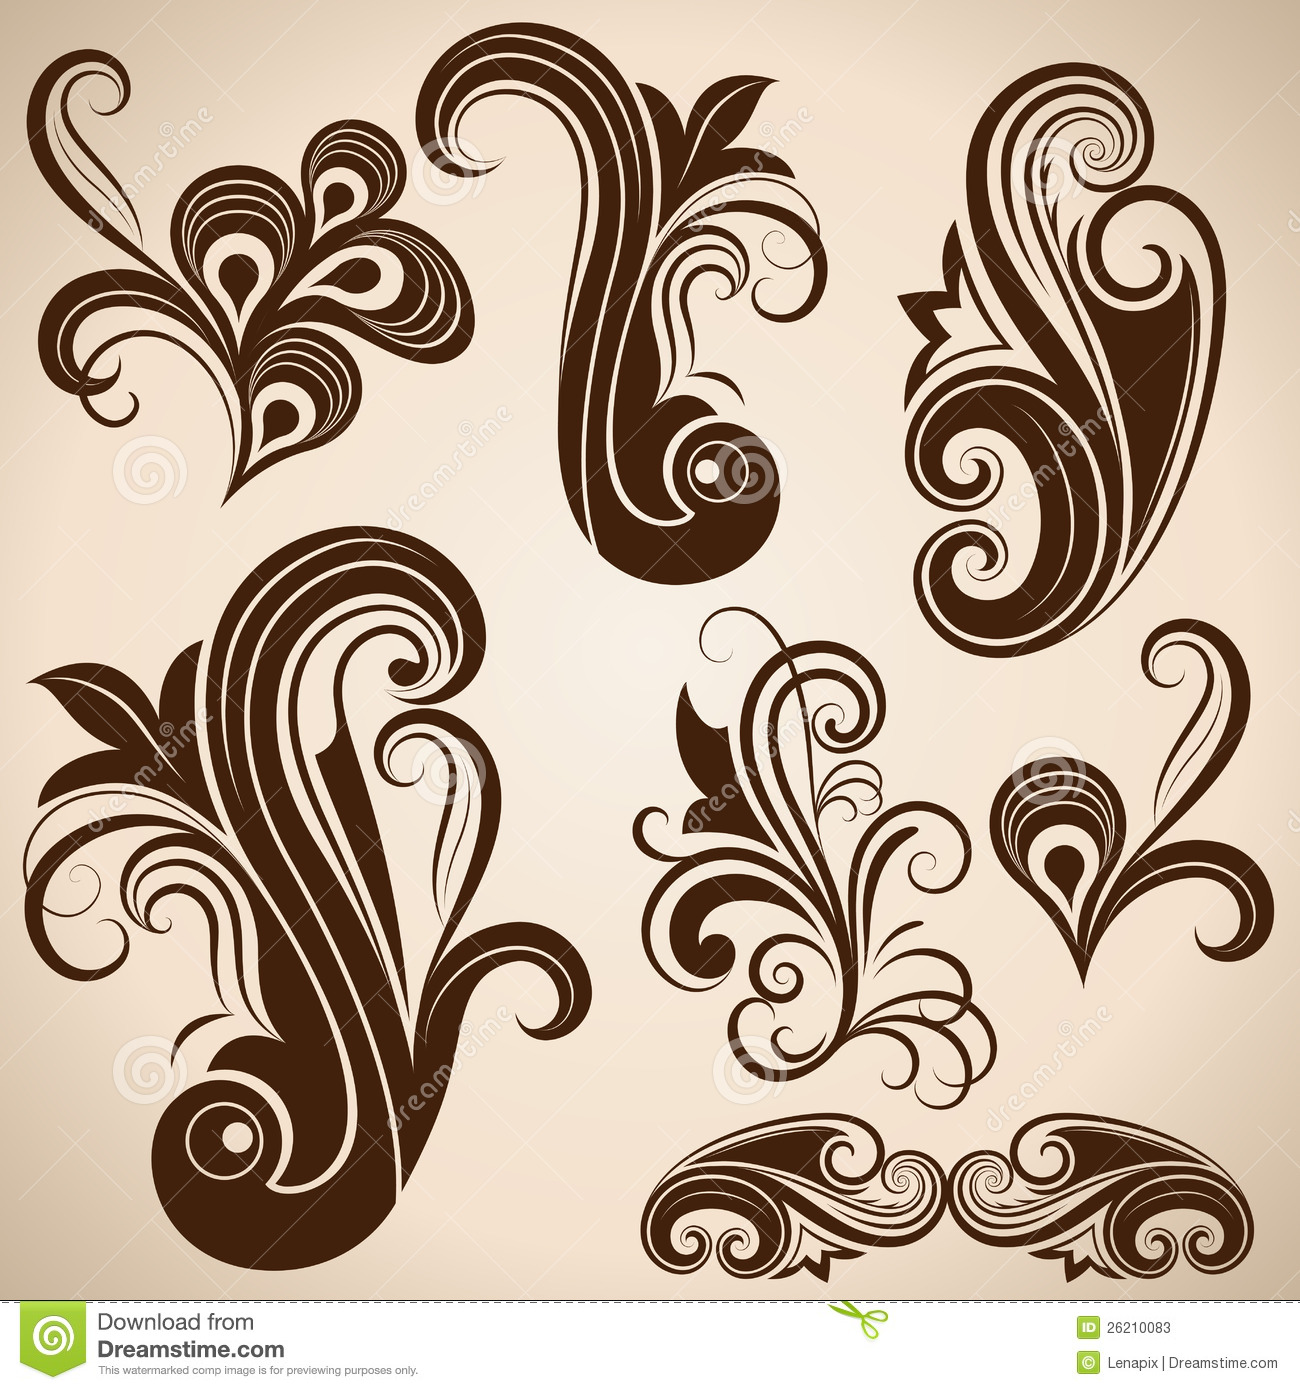 Vintage Design Vintage Floral Design Elements Stock Vector Image 26210083